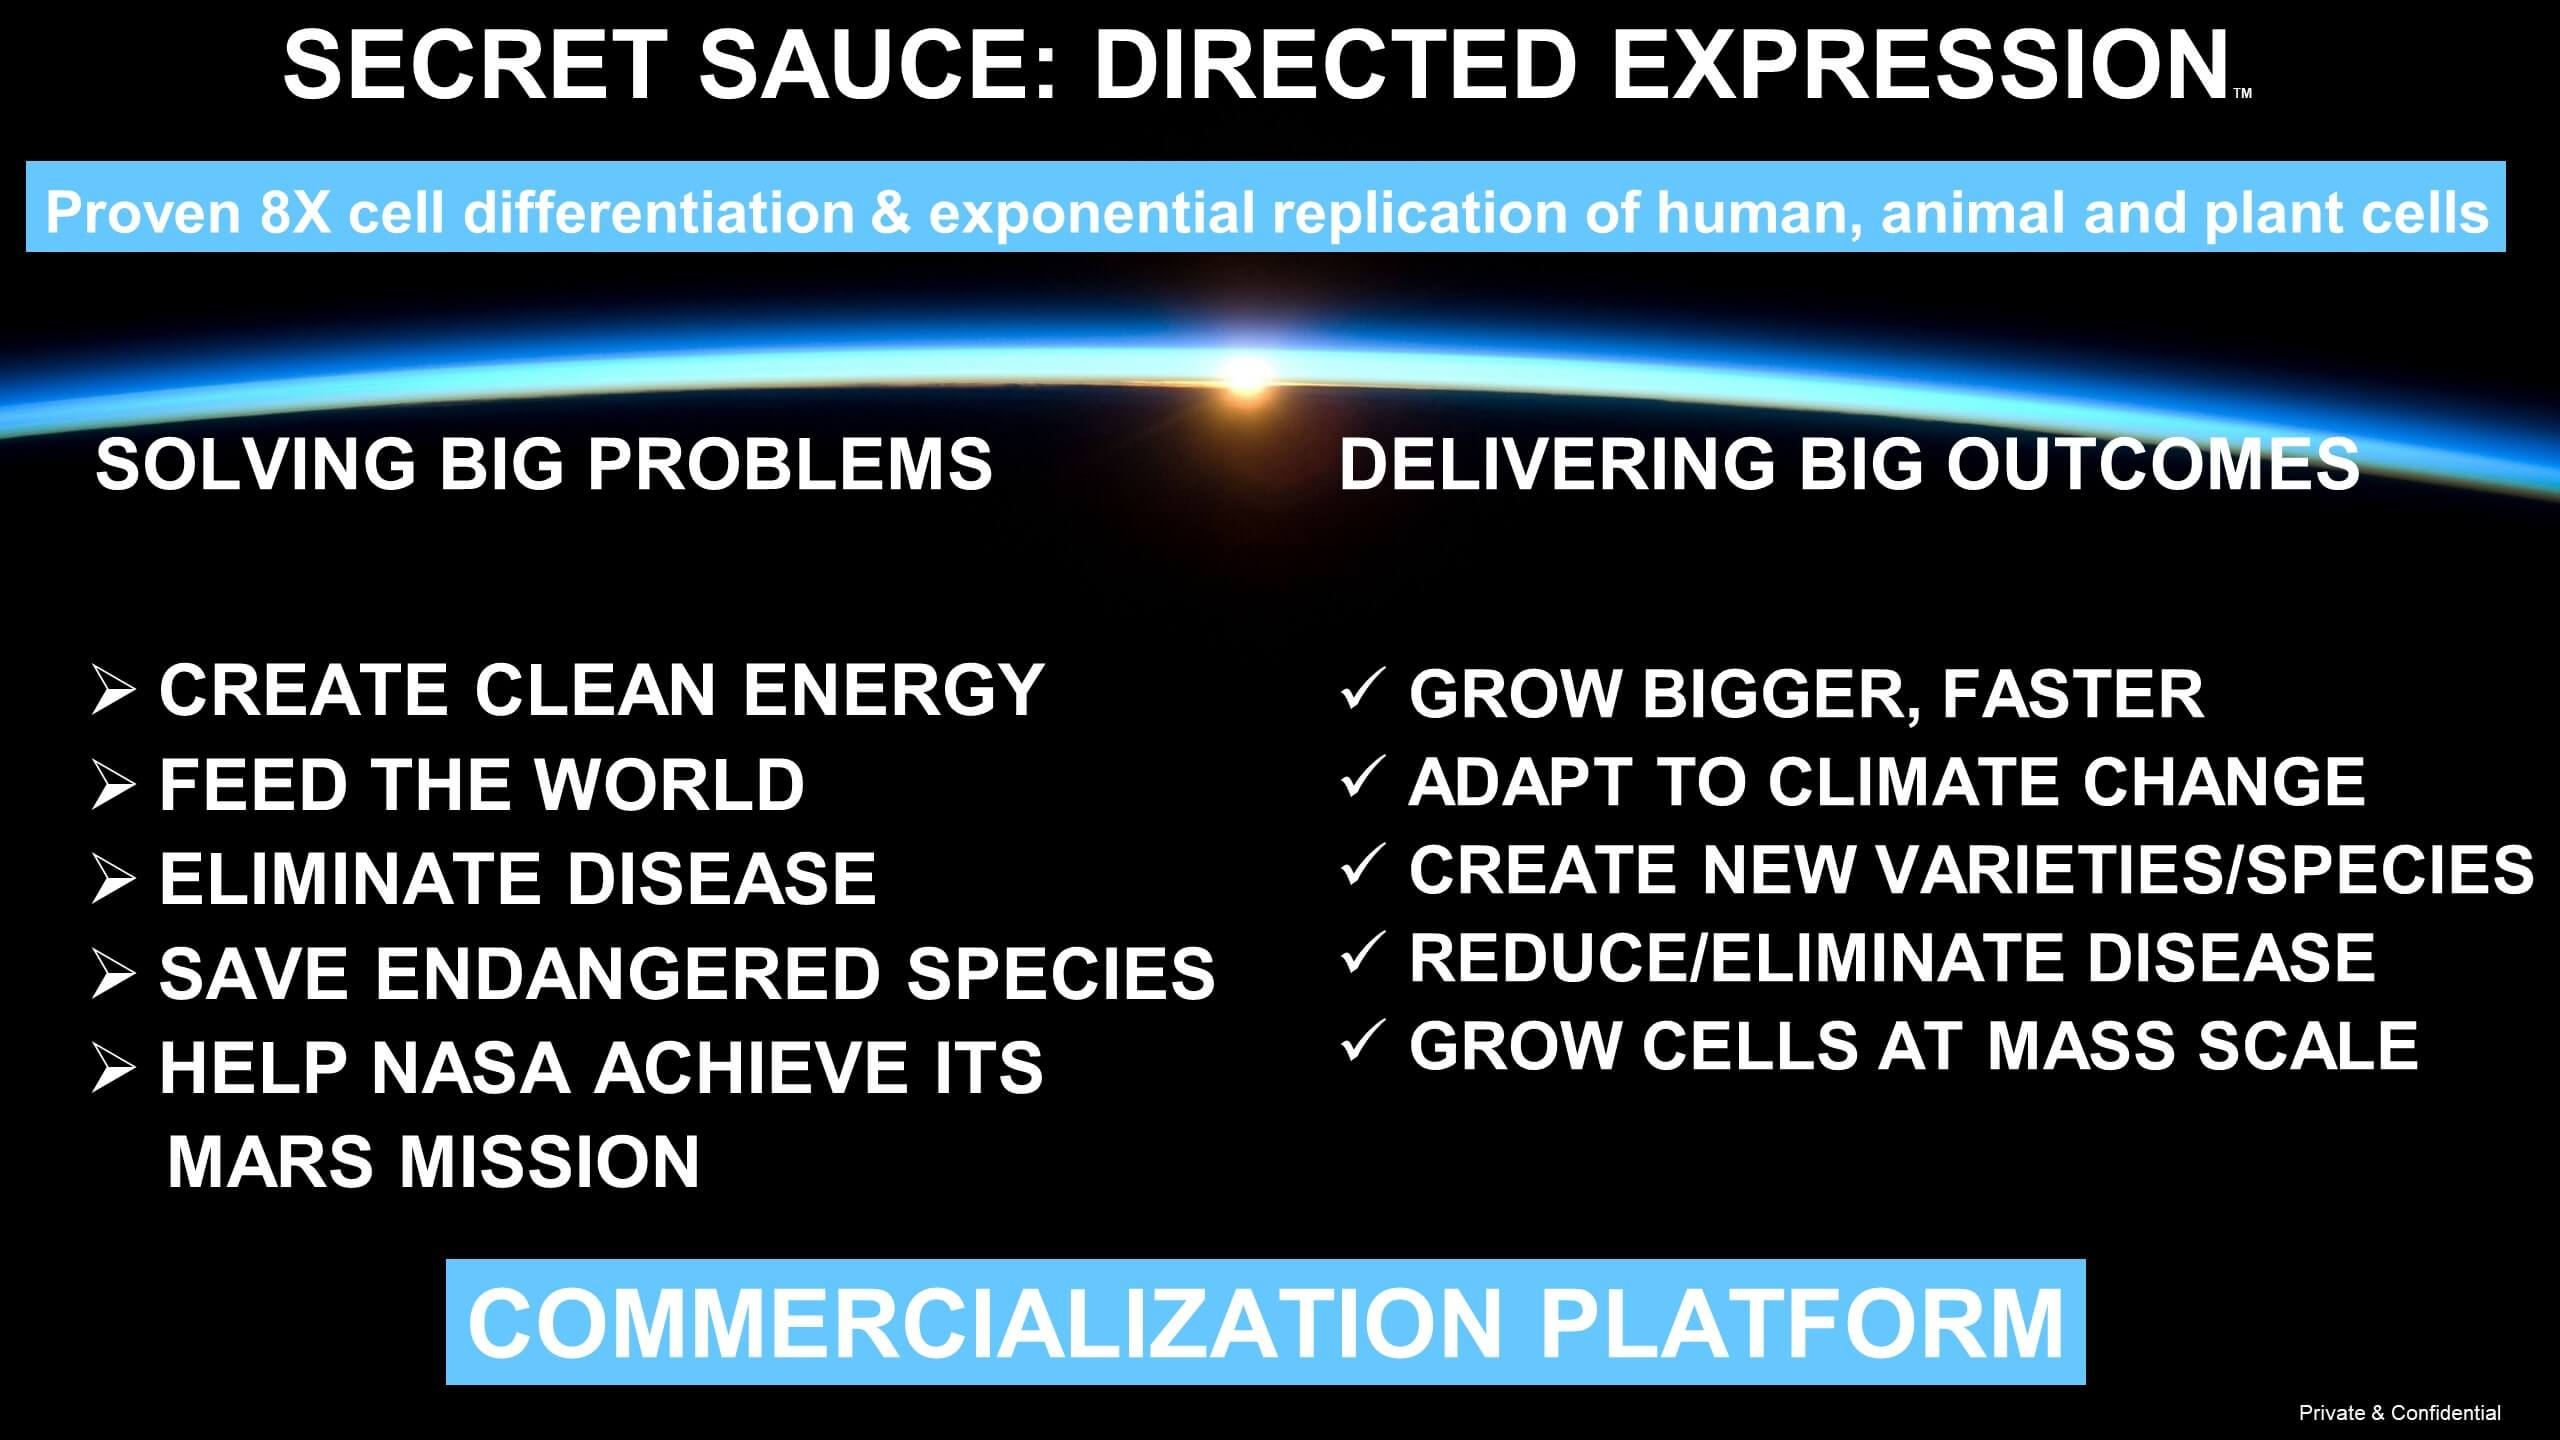 Proven 8X cell differentiation & exponential replication of human, animal and plant cells